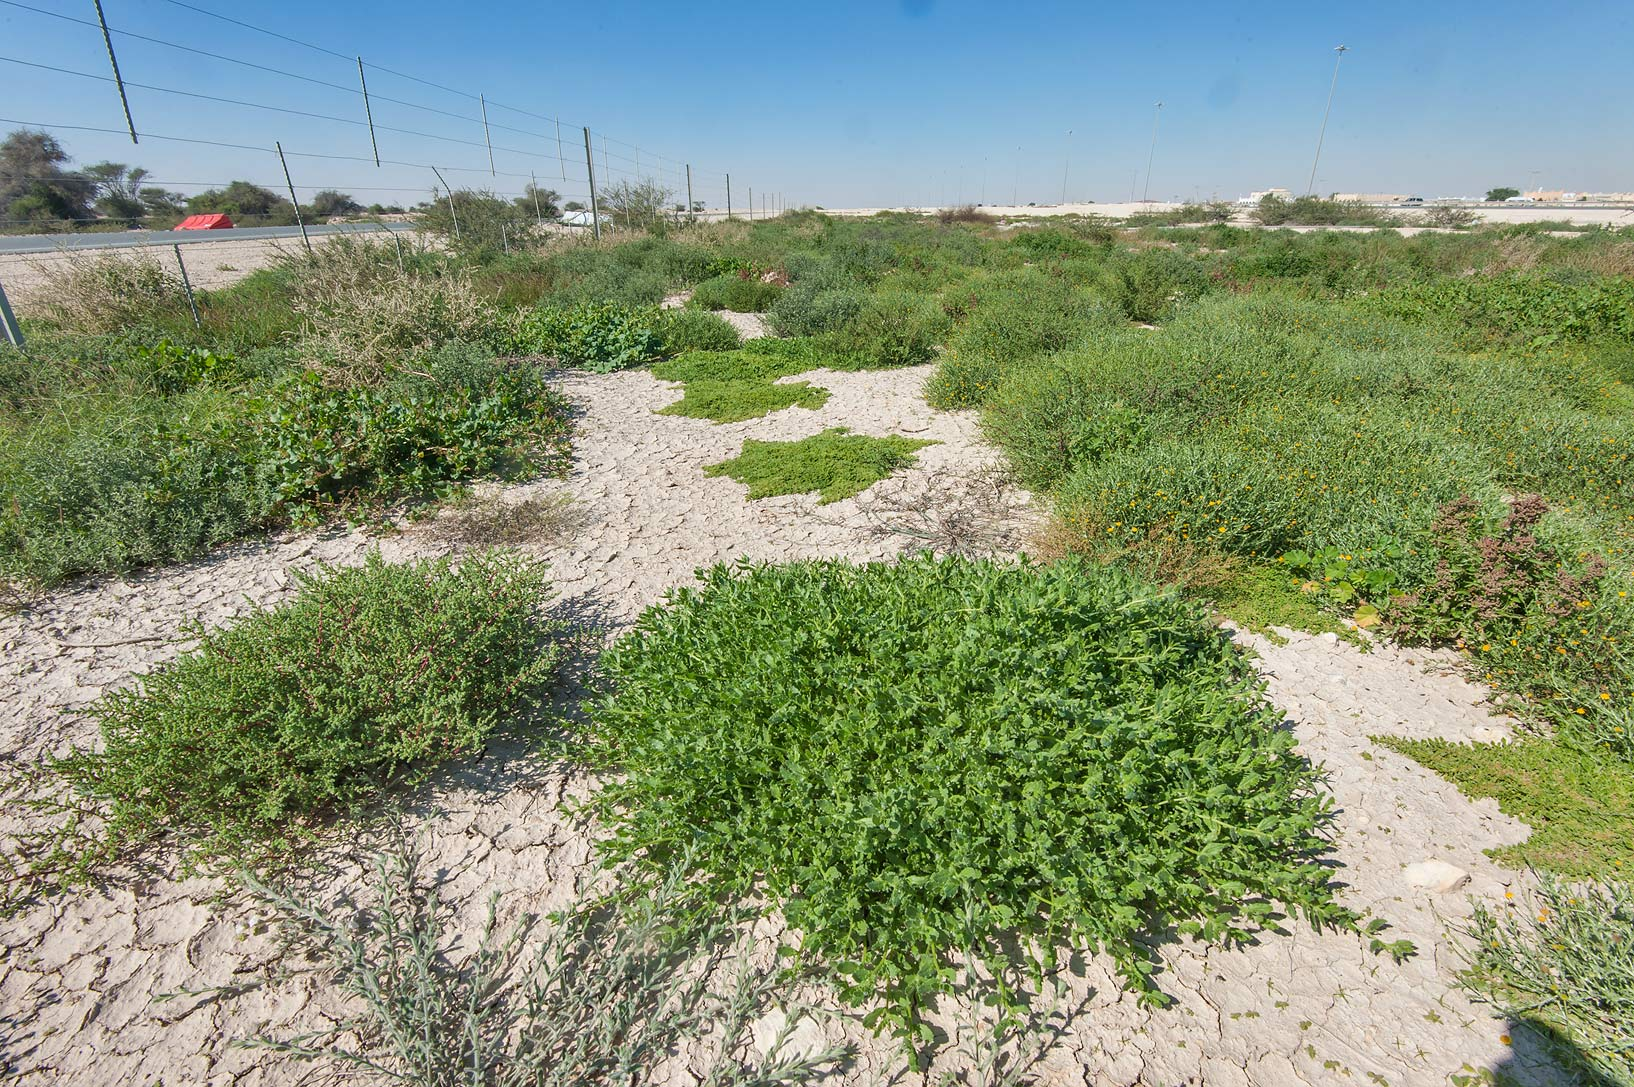 Green plants in roadside depression near Dukhan Highway near Ash-Shahaniyah. Qatar